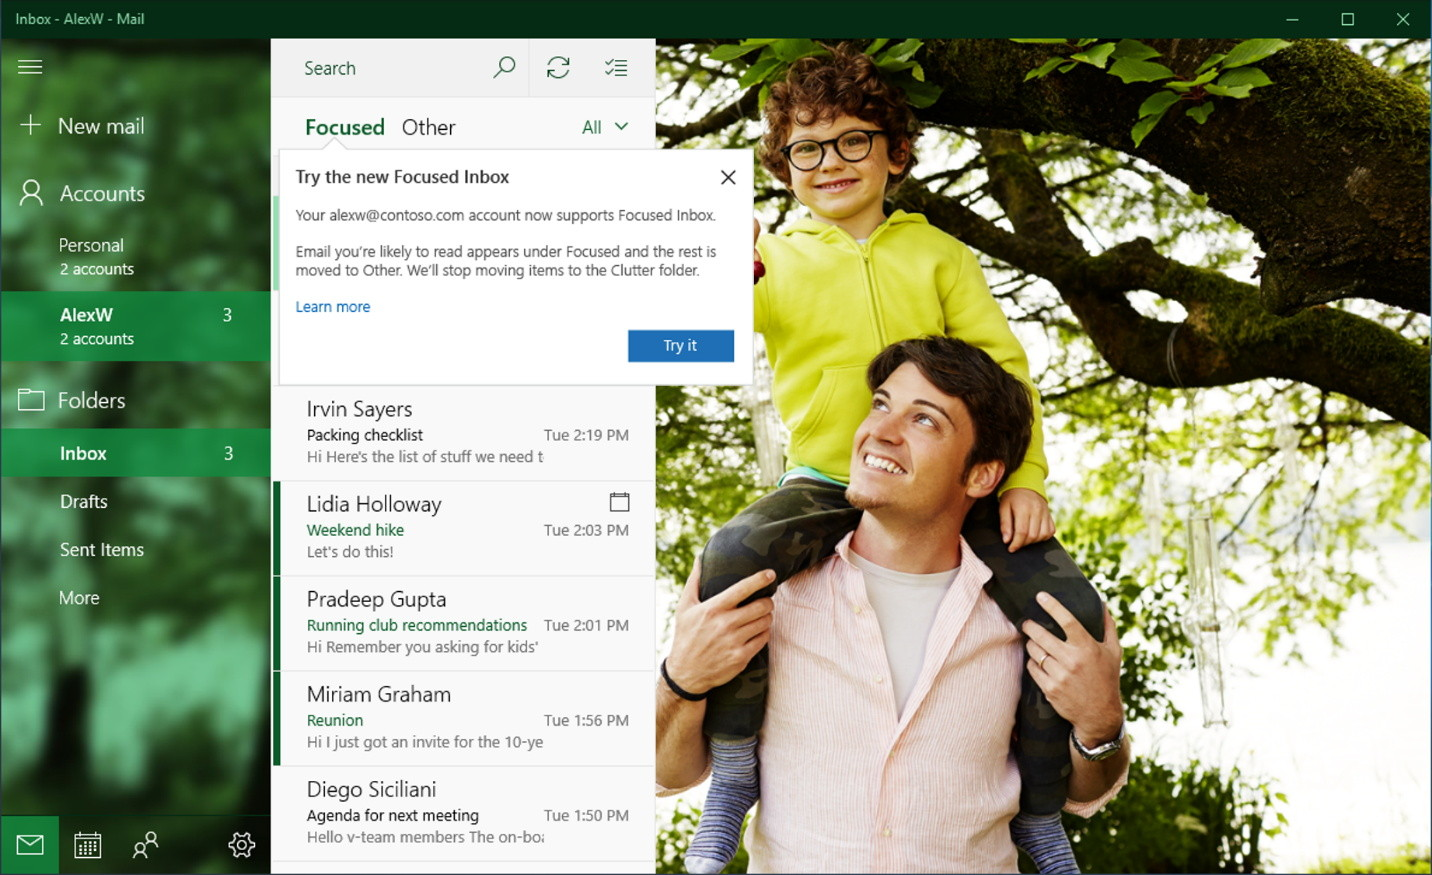 Windows 10 Mail app with Focused Inbox